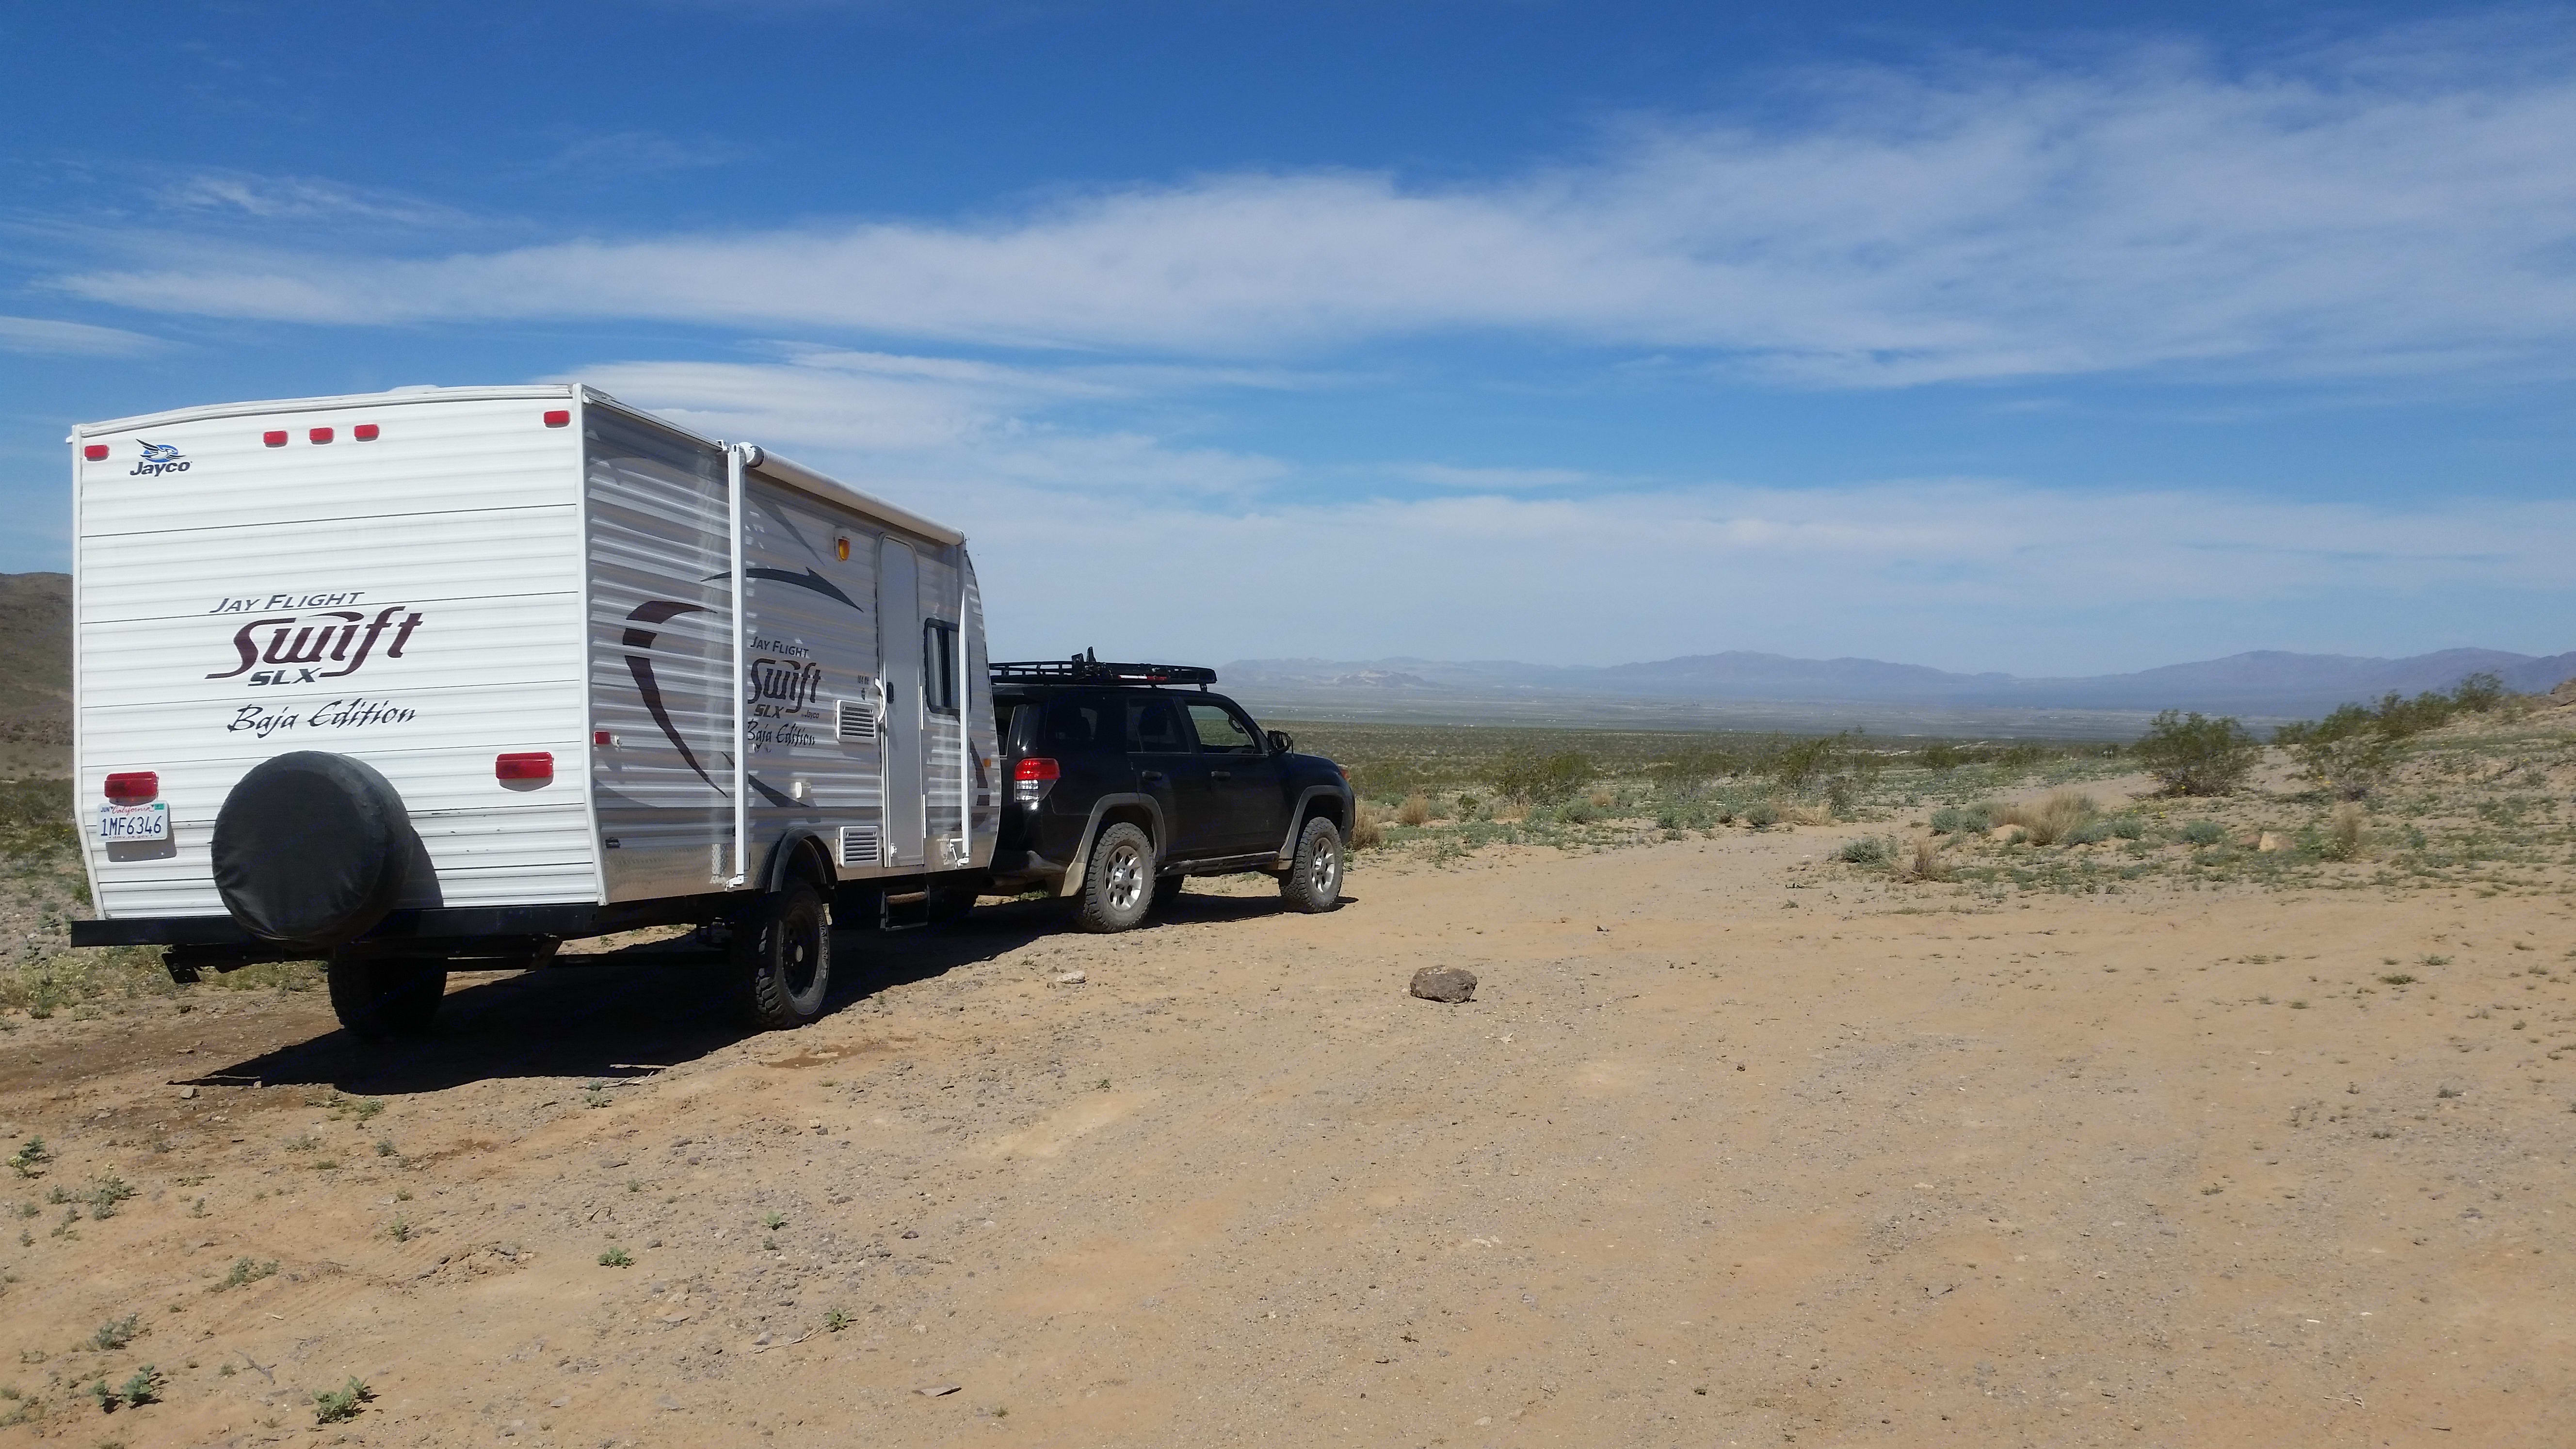 Our Baja dry camping out in the Old Dale area near Joshua Tree National Park.. Jayco Baja 2014